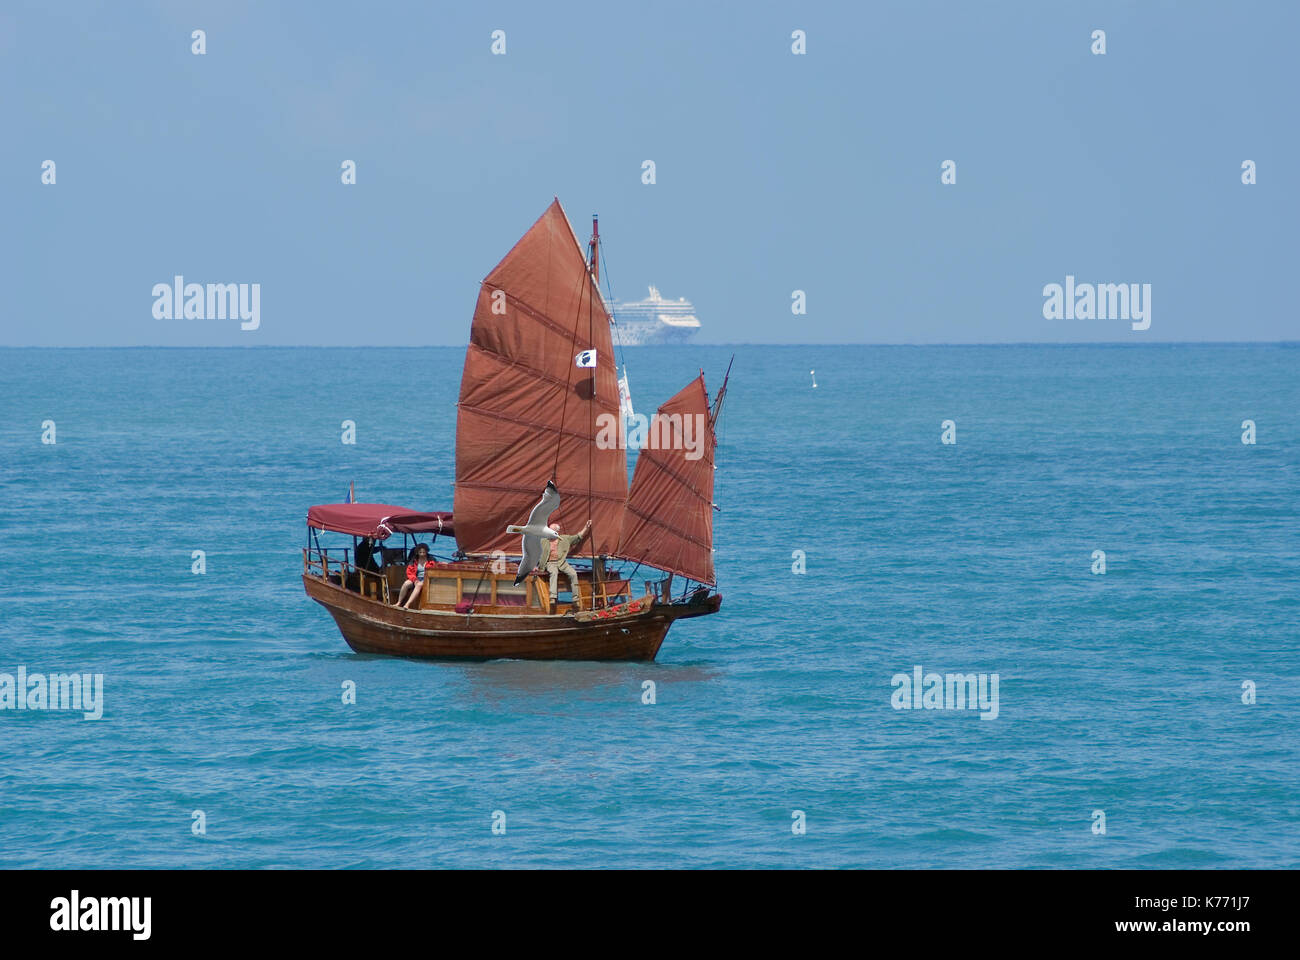 Chinese brown junk in Mediterranean sea during 'les regates royales' , a sailing event occuring every year in September in French riviera - Stock Image